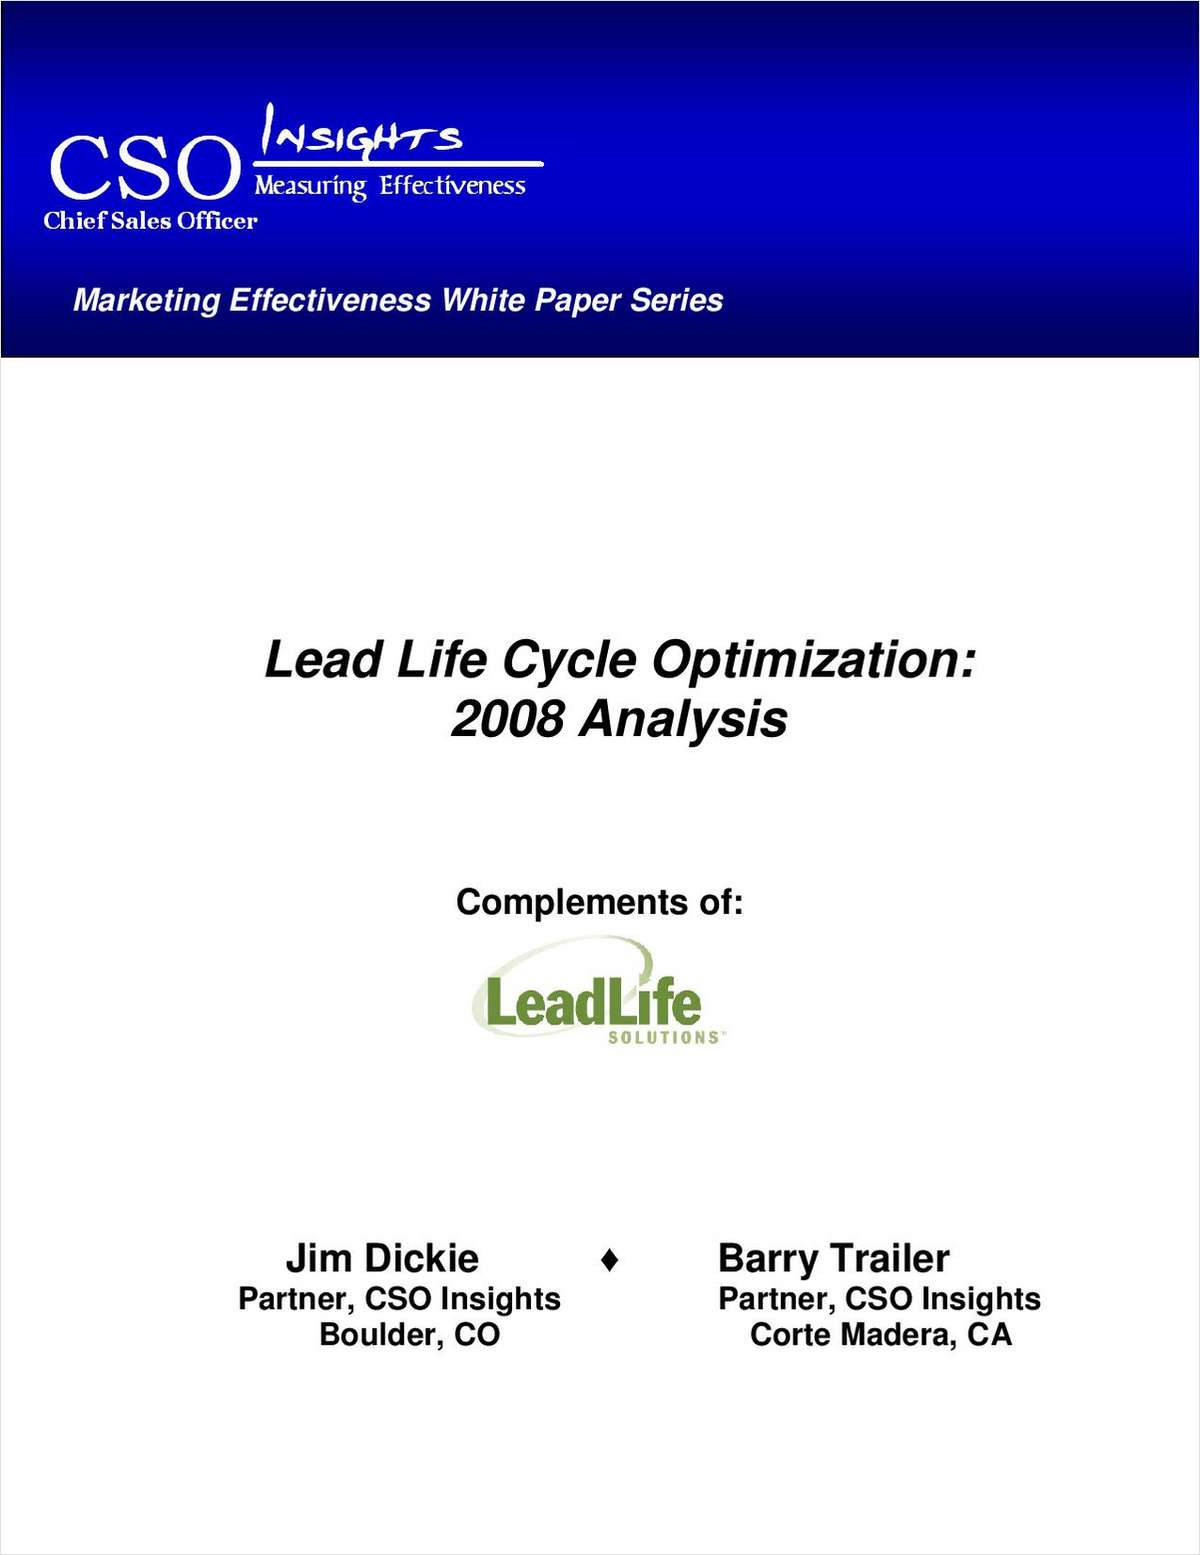 Lead Life Cycle Optimization: 2008 Analysis